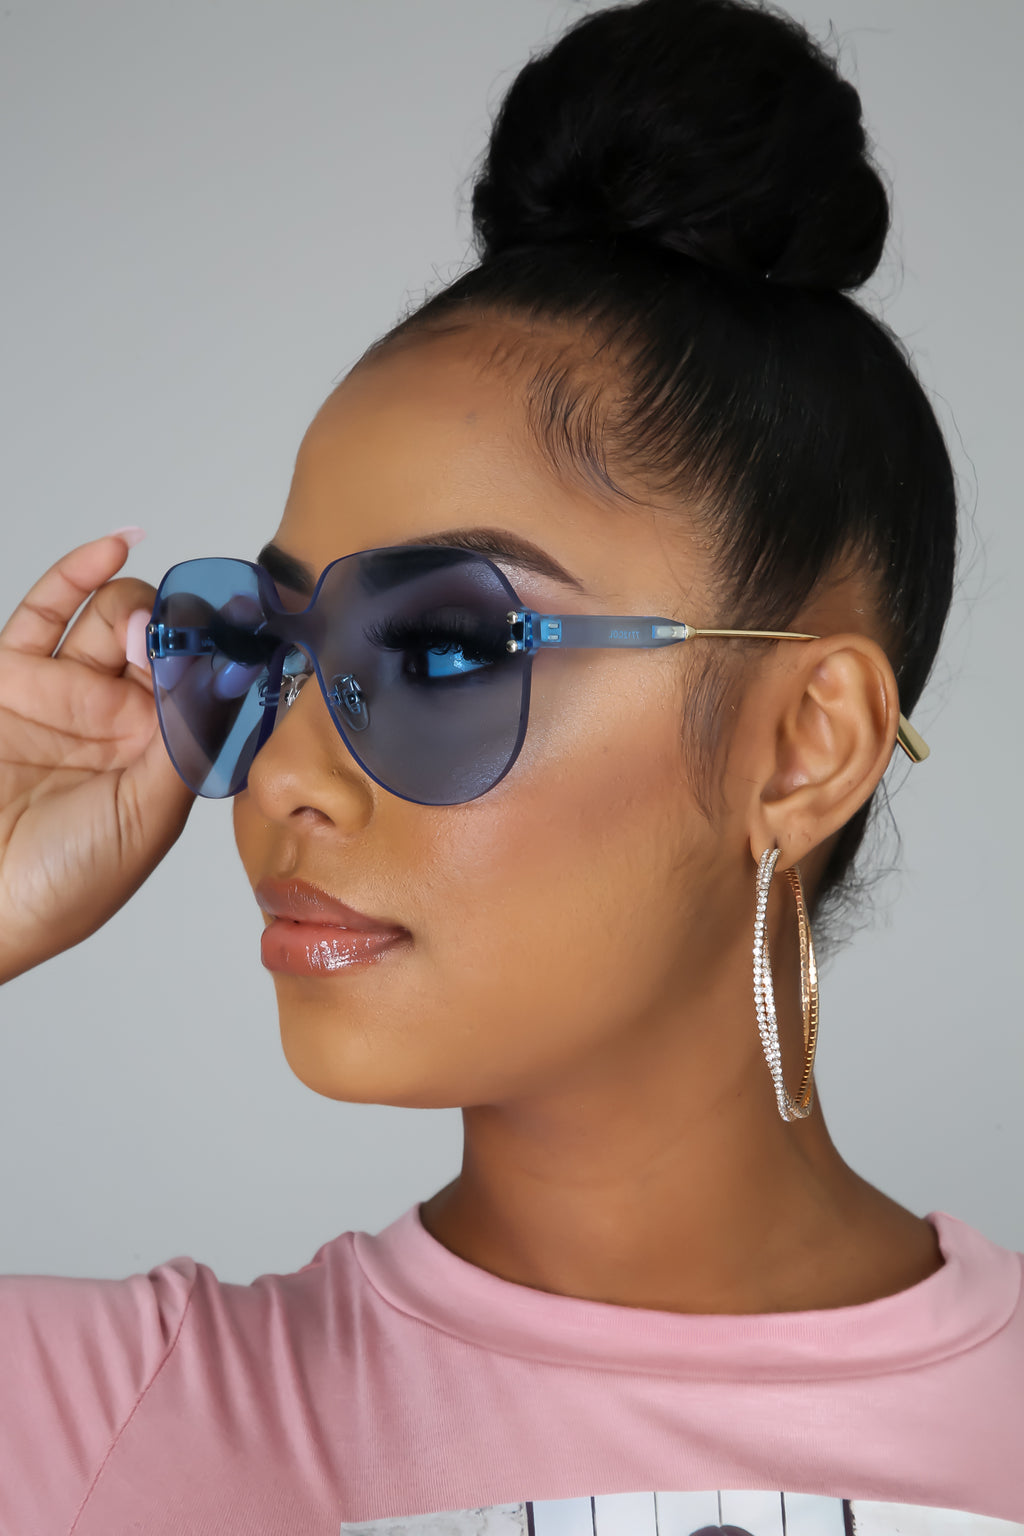 Feeling Fancy Sunglasses | GitiOnline